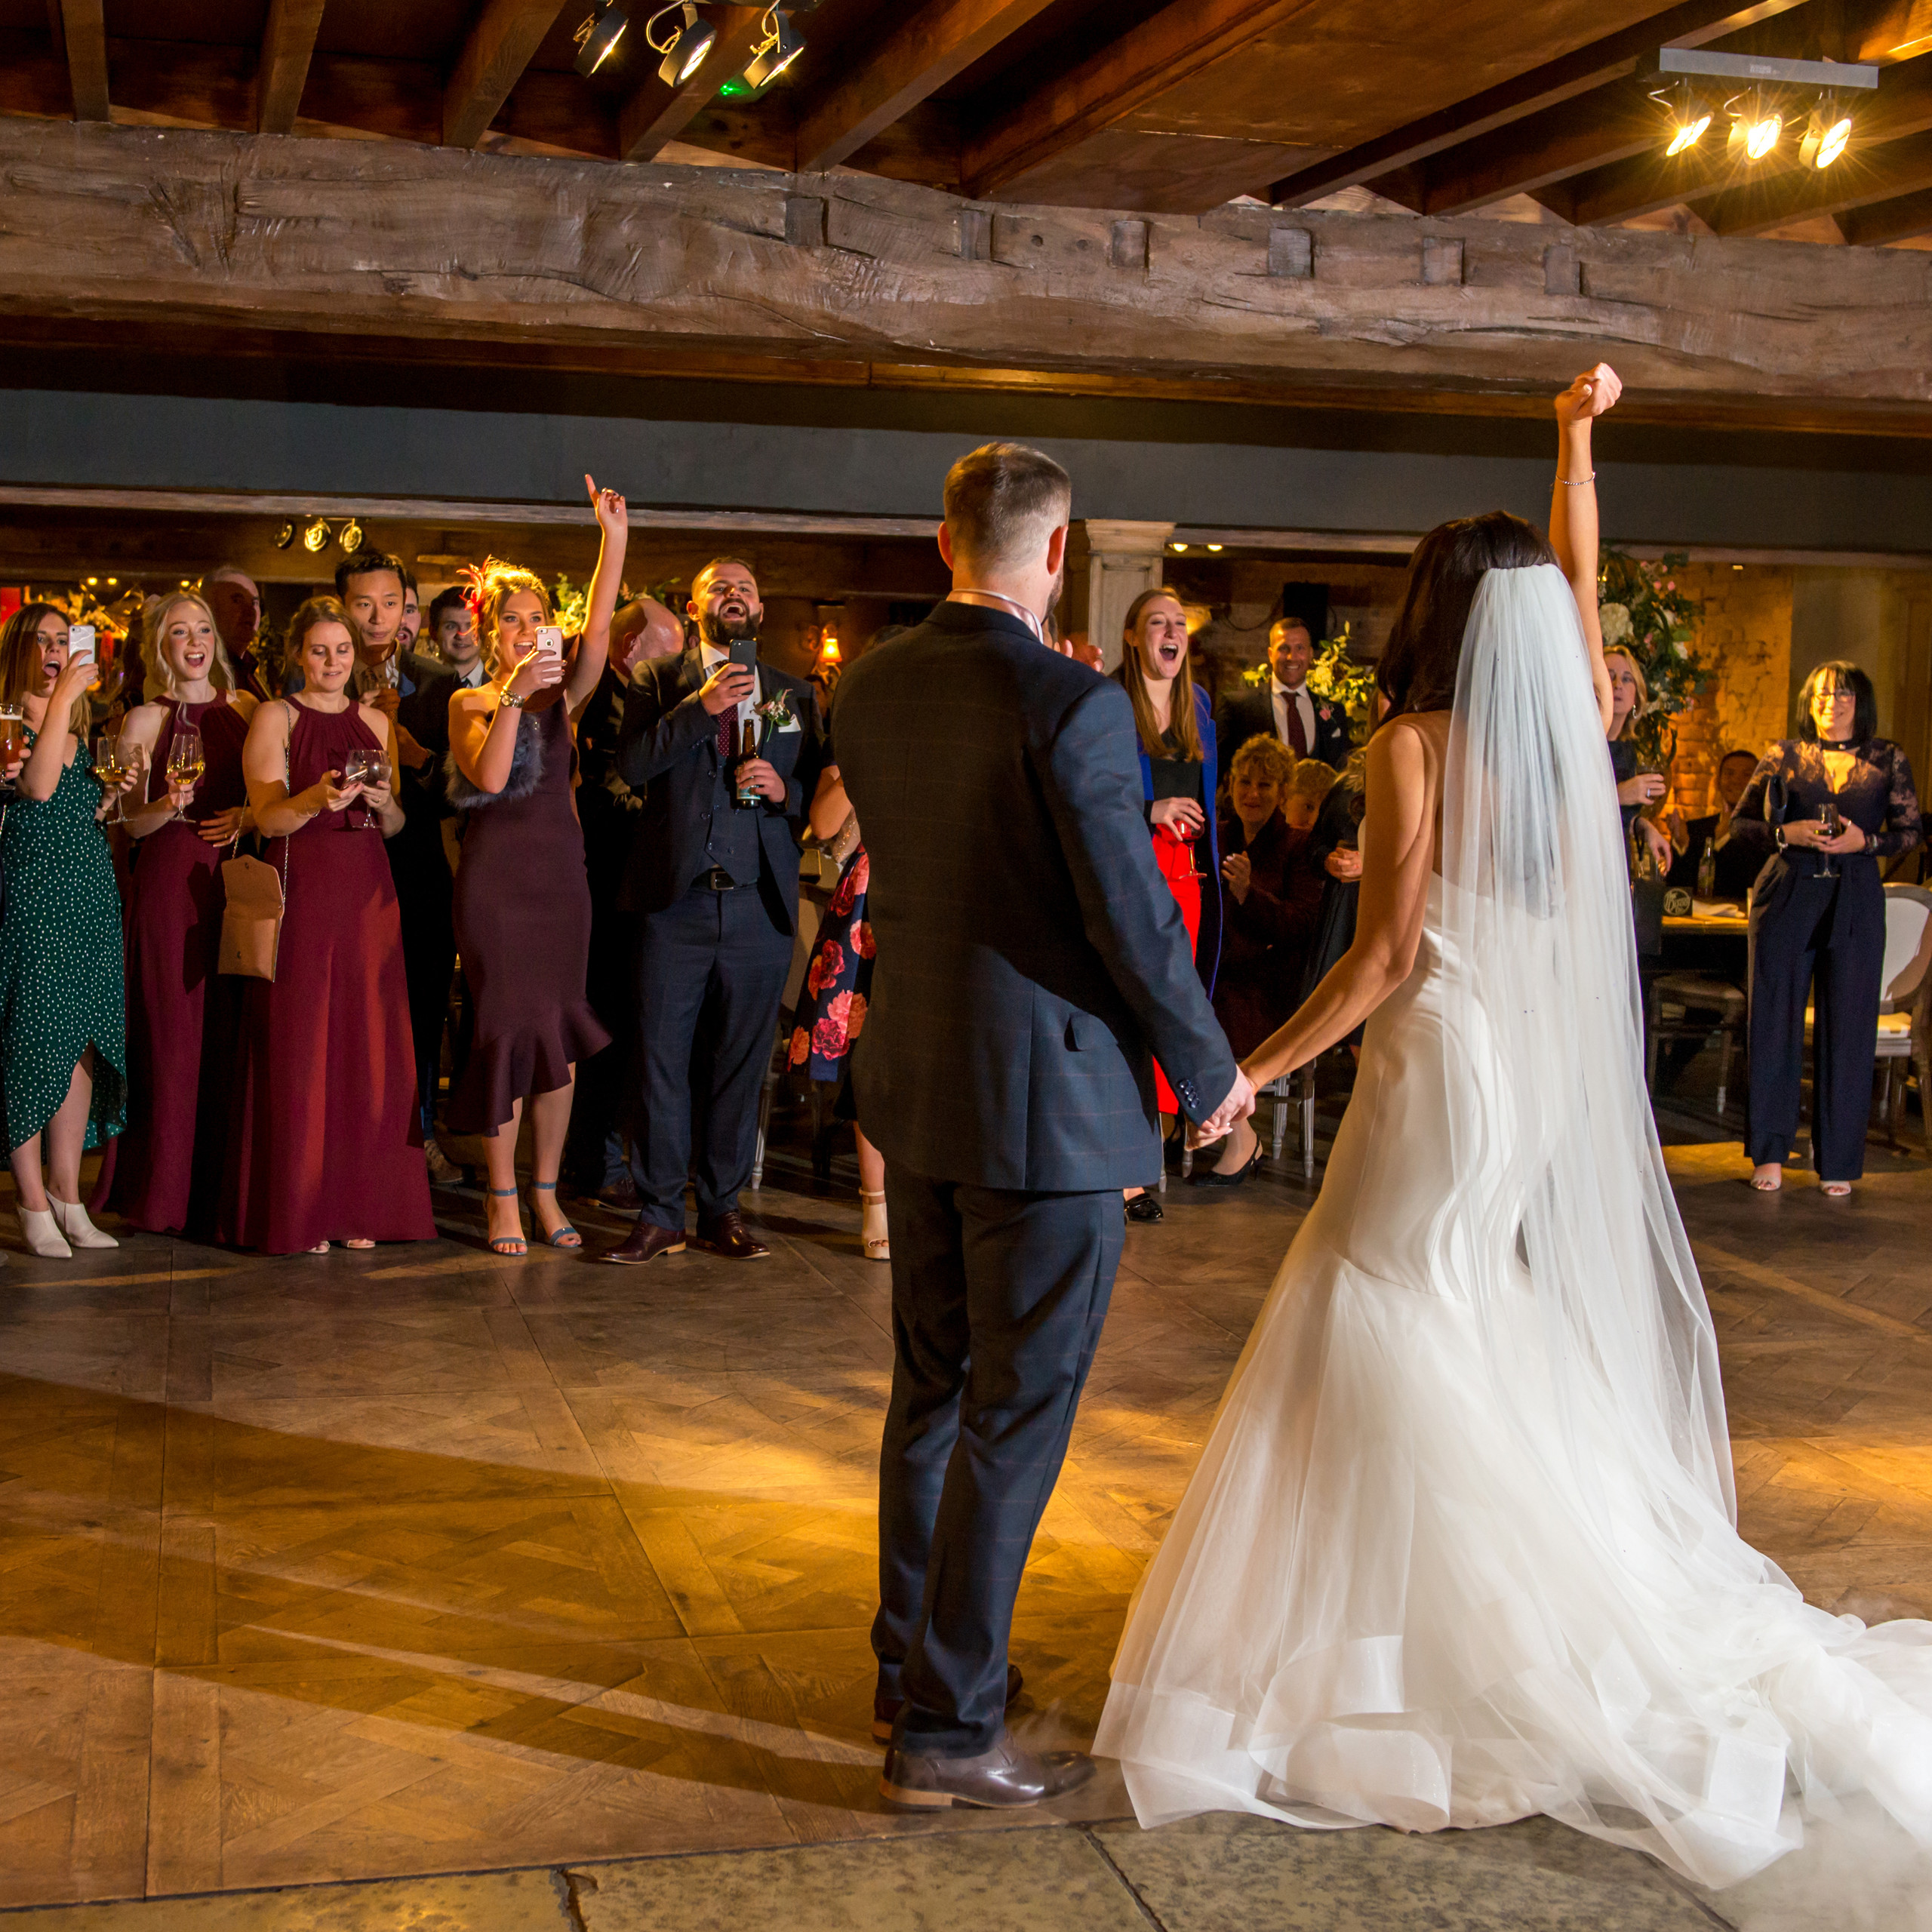 First dance photograph of stunning bride and groom celebrating at Le Petit Chateau in Otterburn, Northumberland